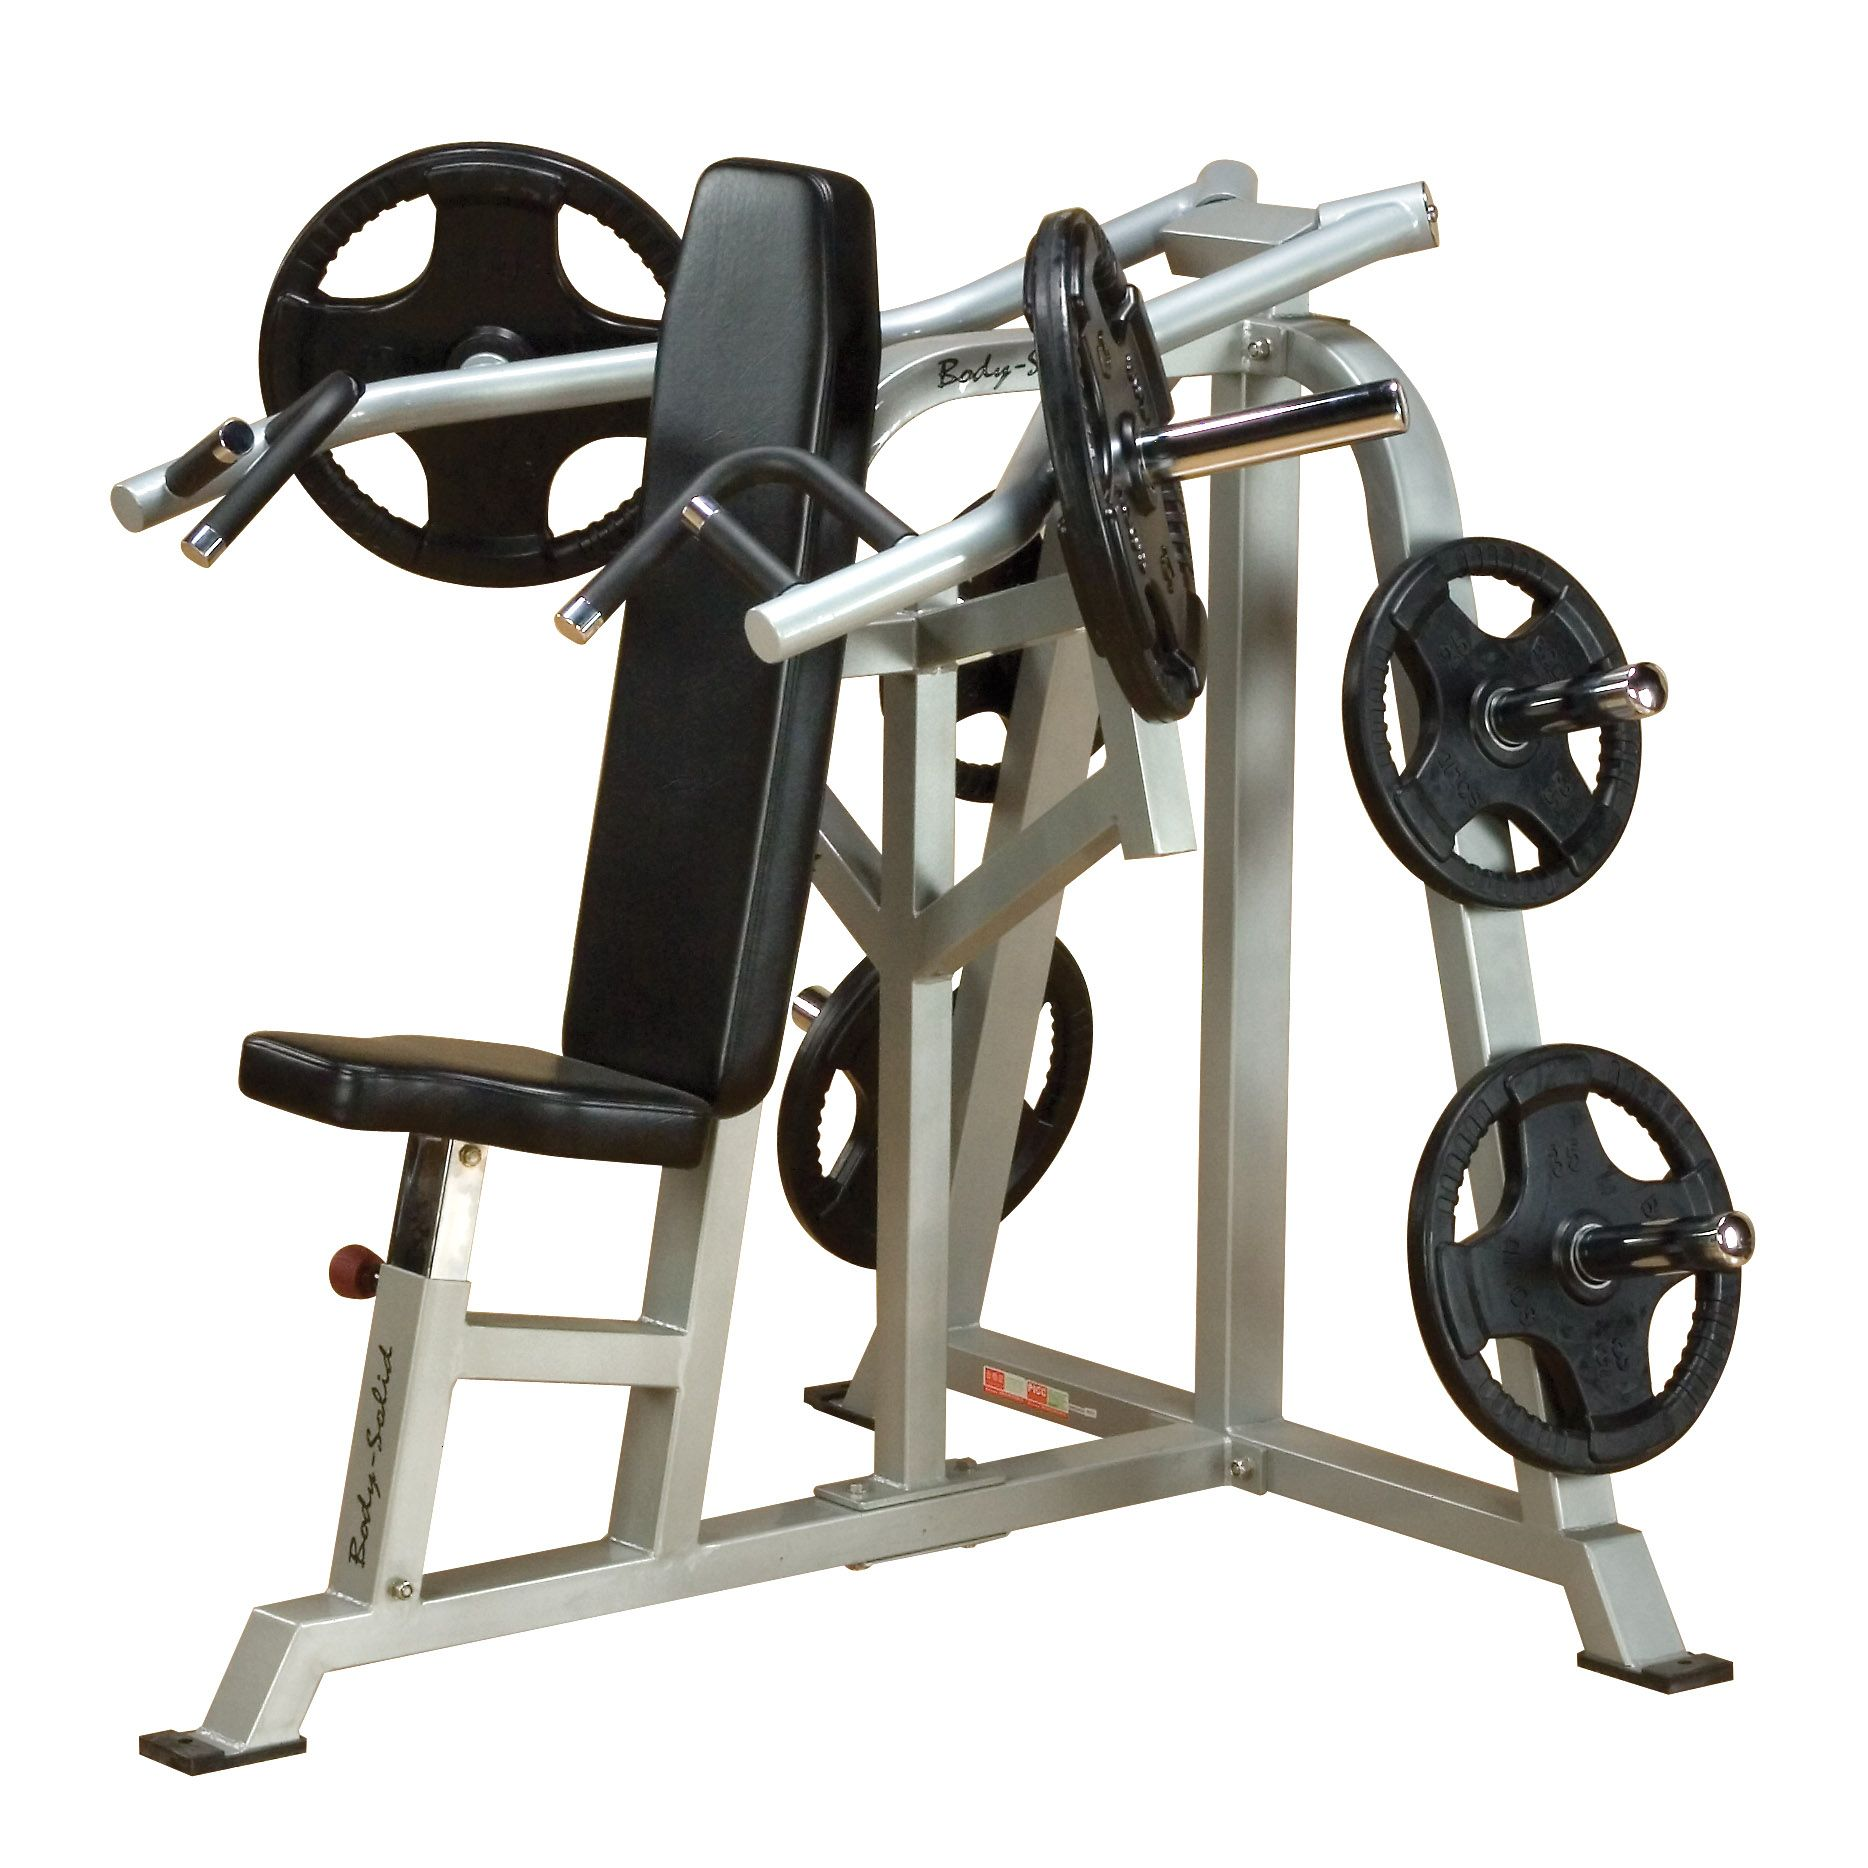 Body Solid Home Gym Equipment This Looks Insightful Take